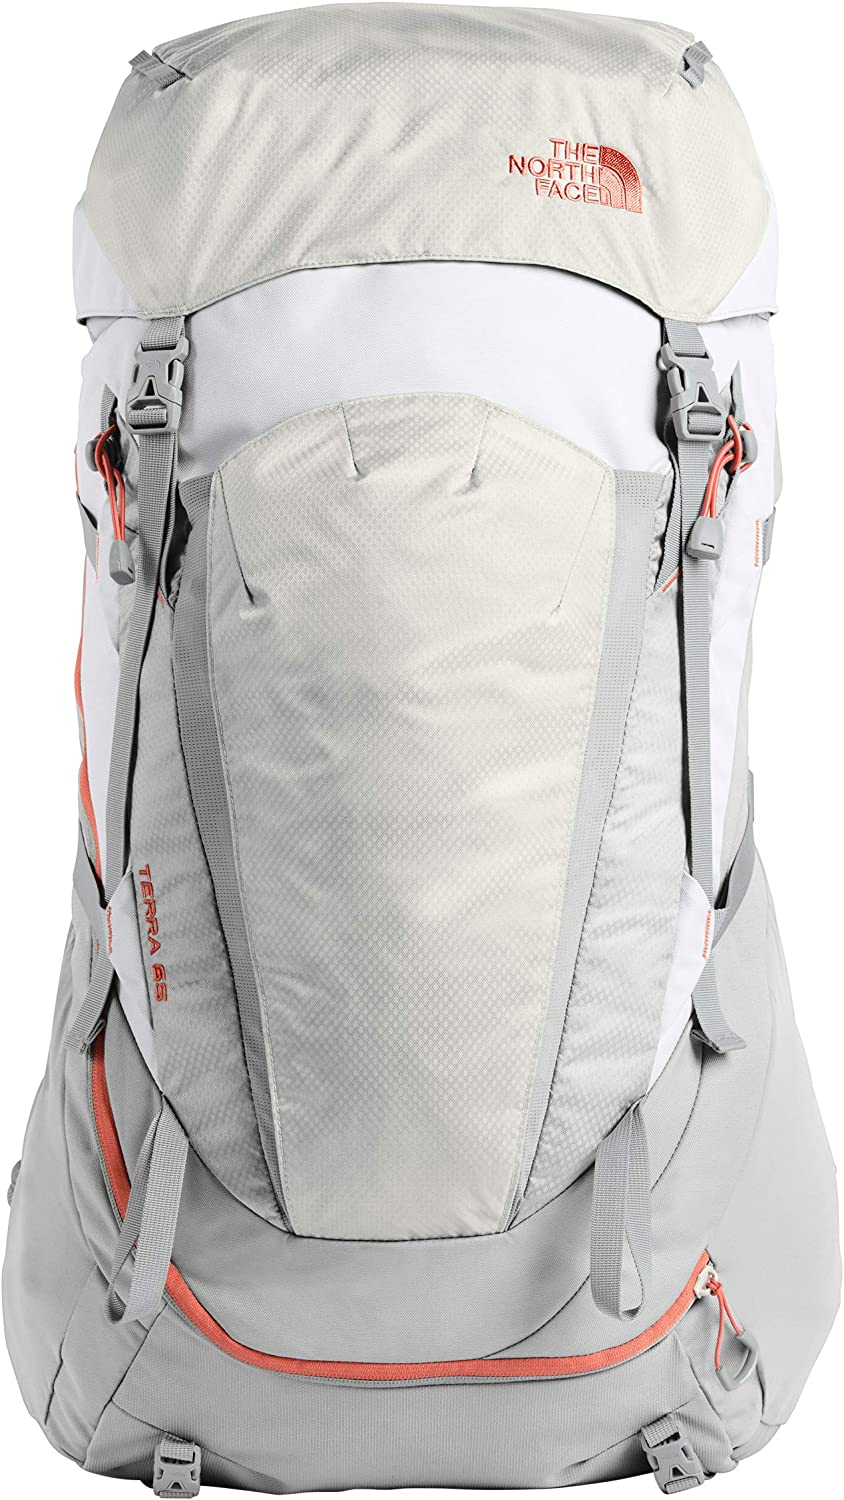 The North Face Women's Terra 65 Backpack